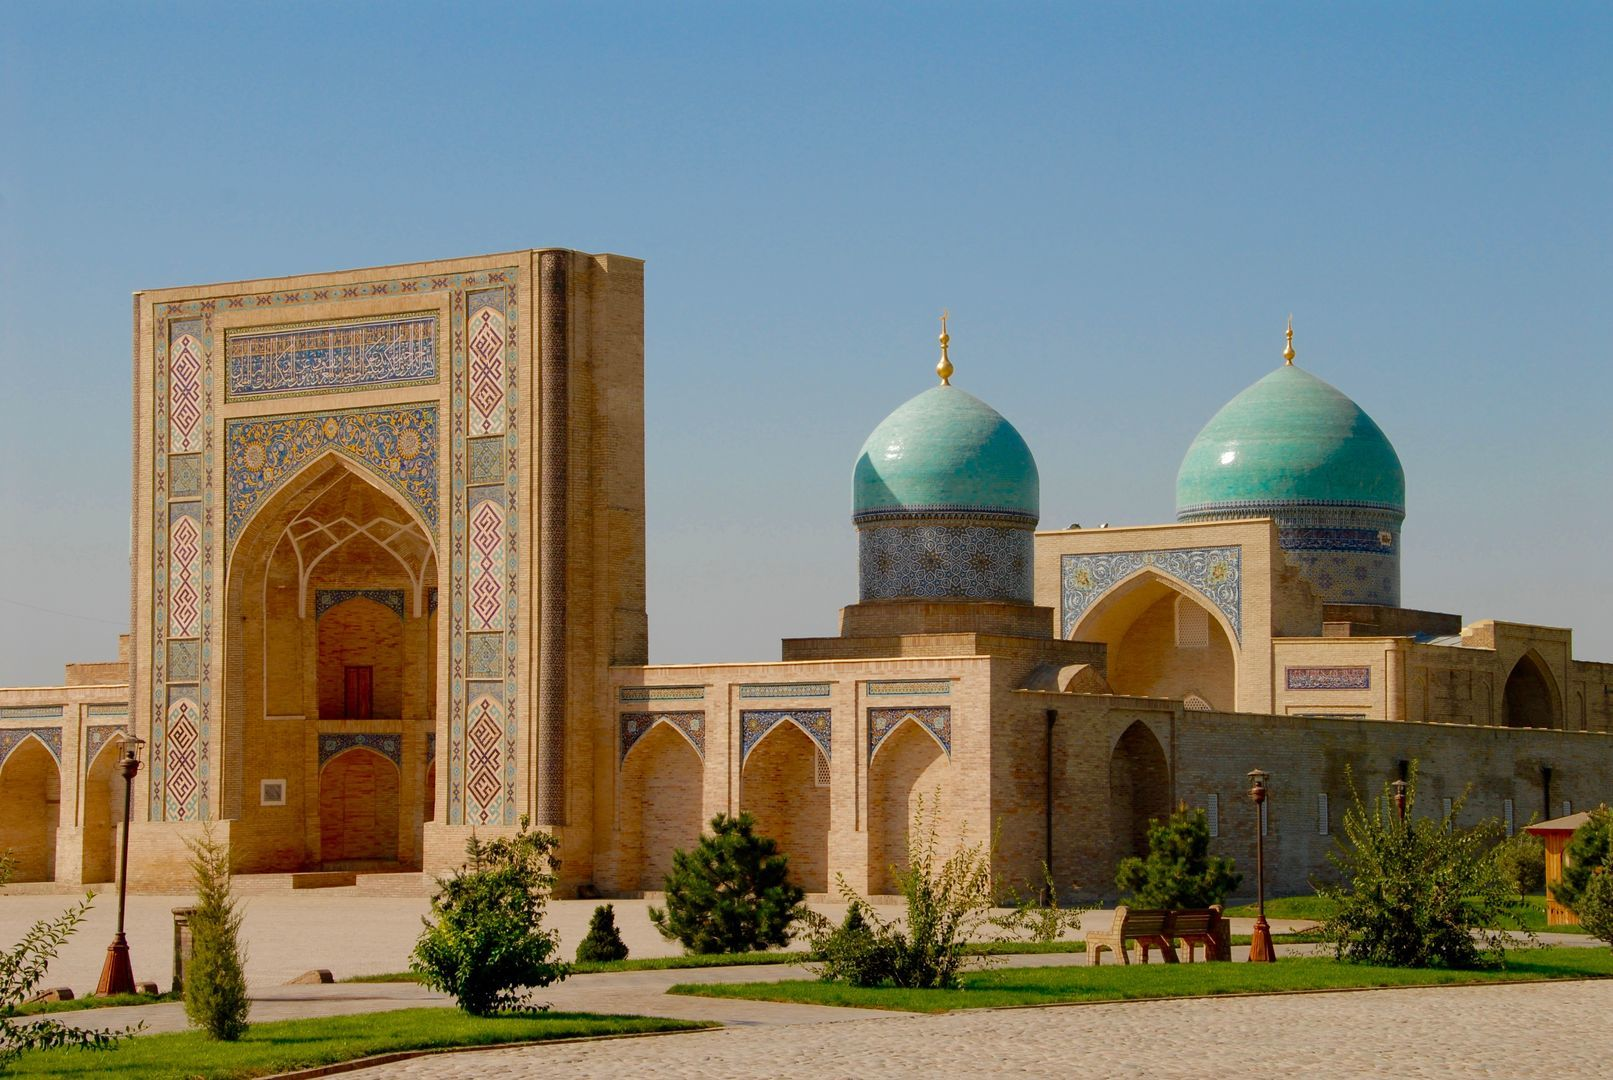 Old central asian city